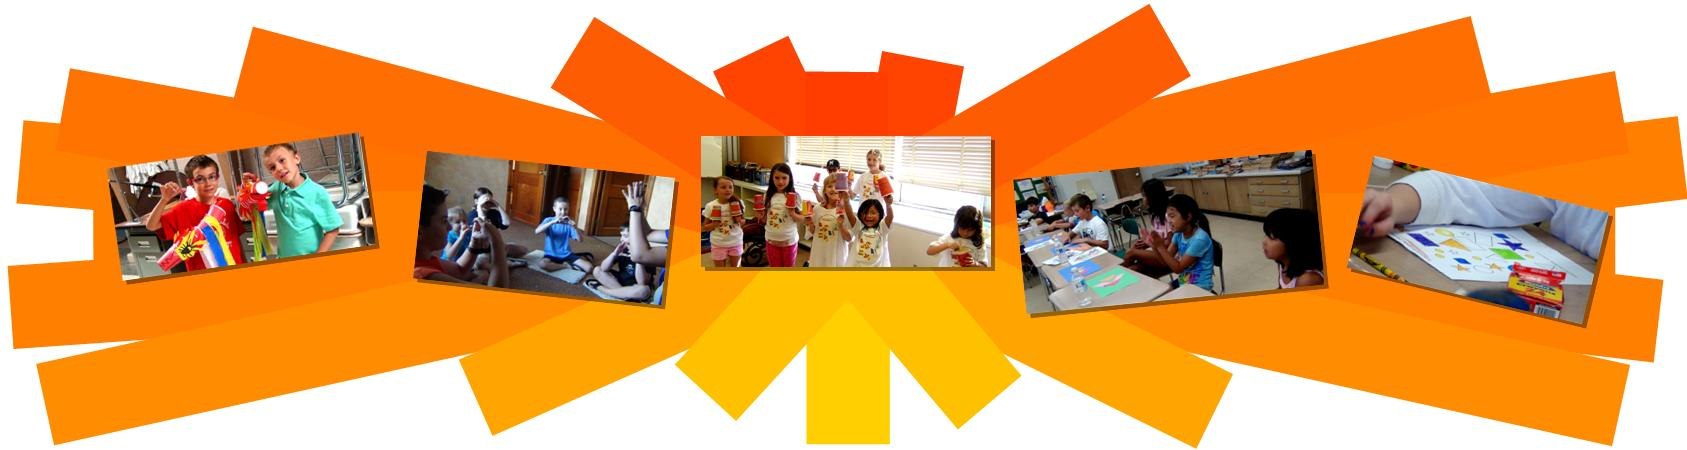 summer camps explosion image (web)